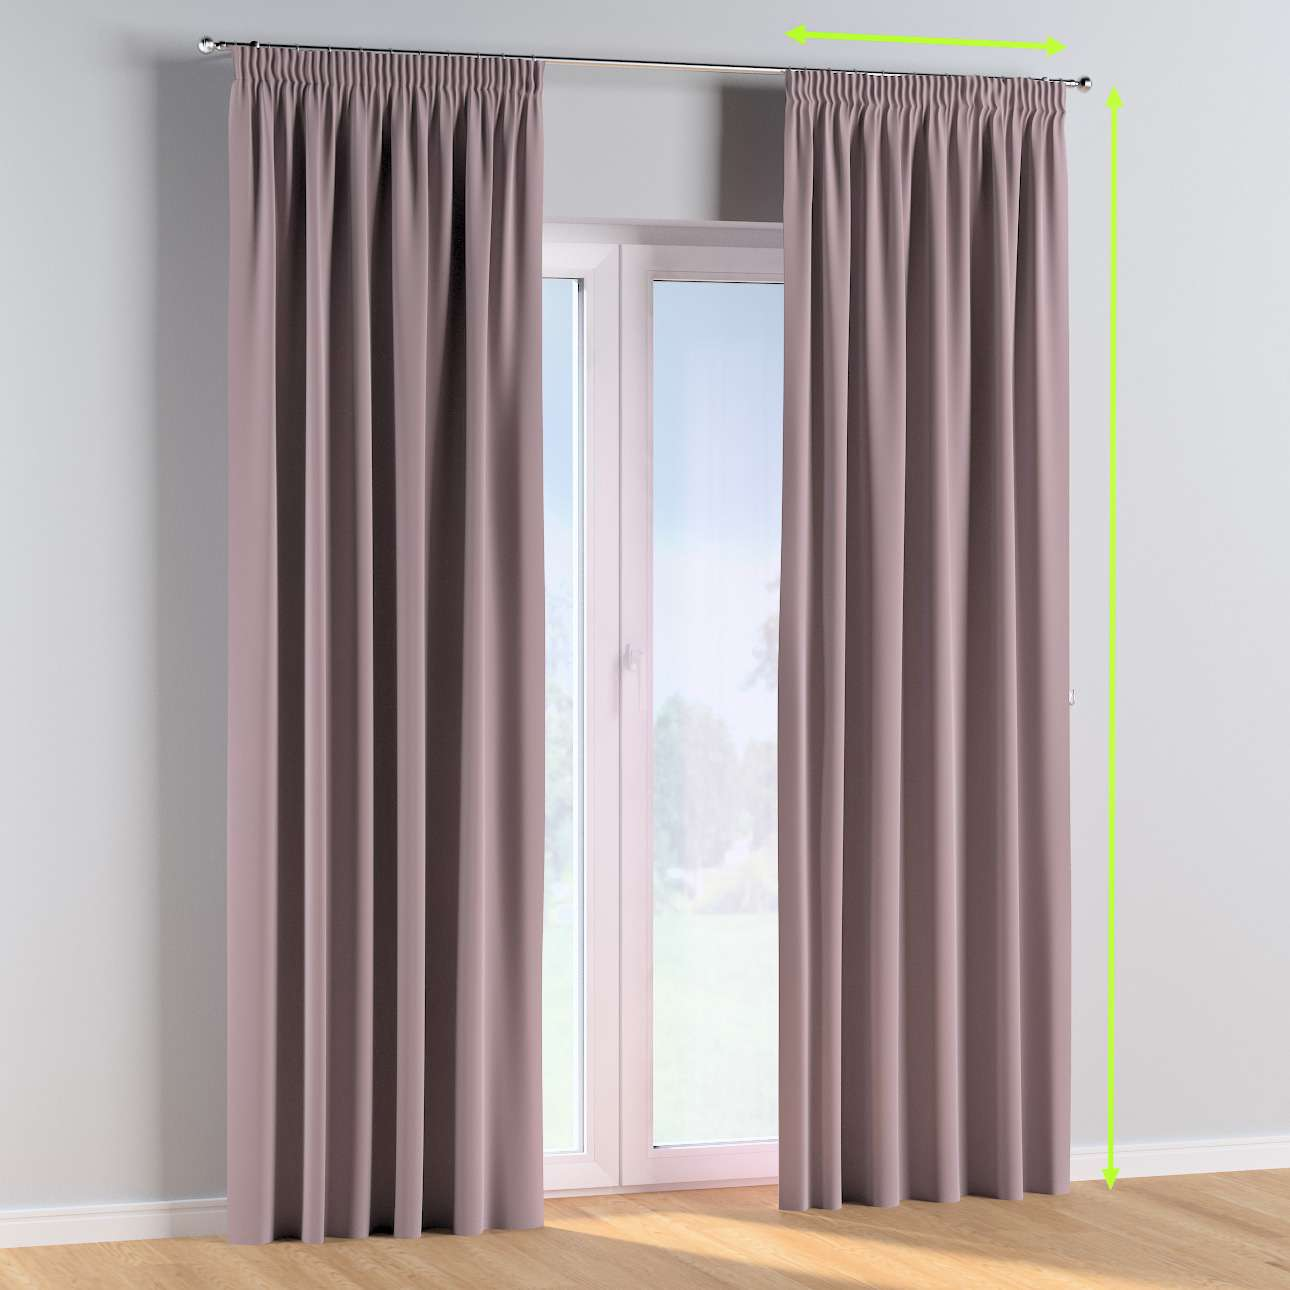 Pencil pleat curtains in collection Posh Velvet, fabric: 704-14